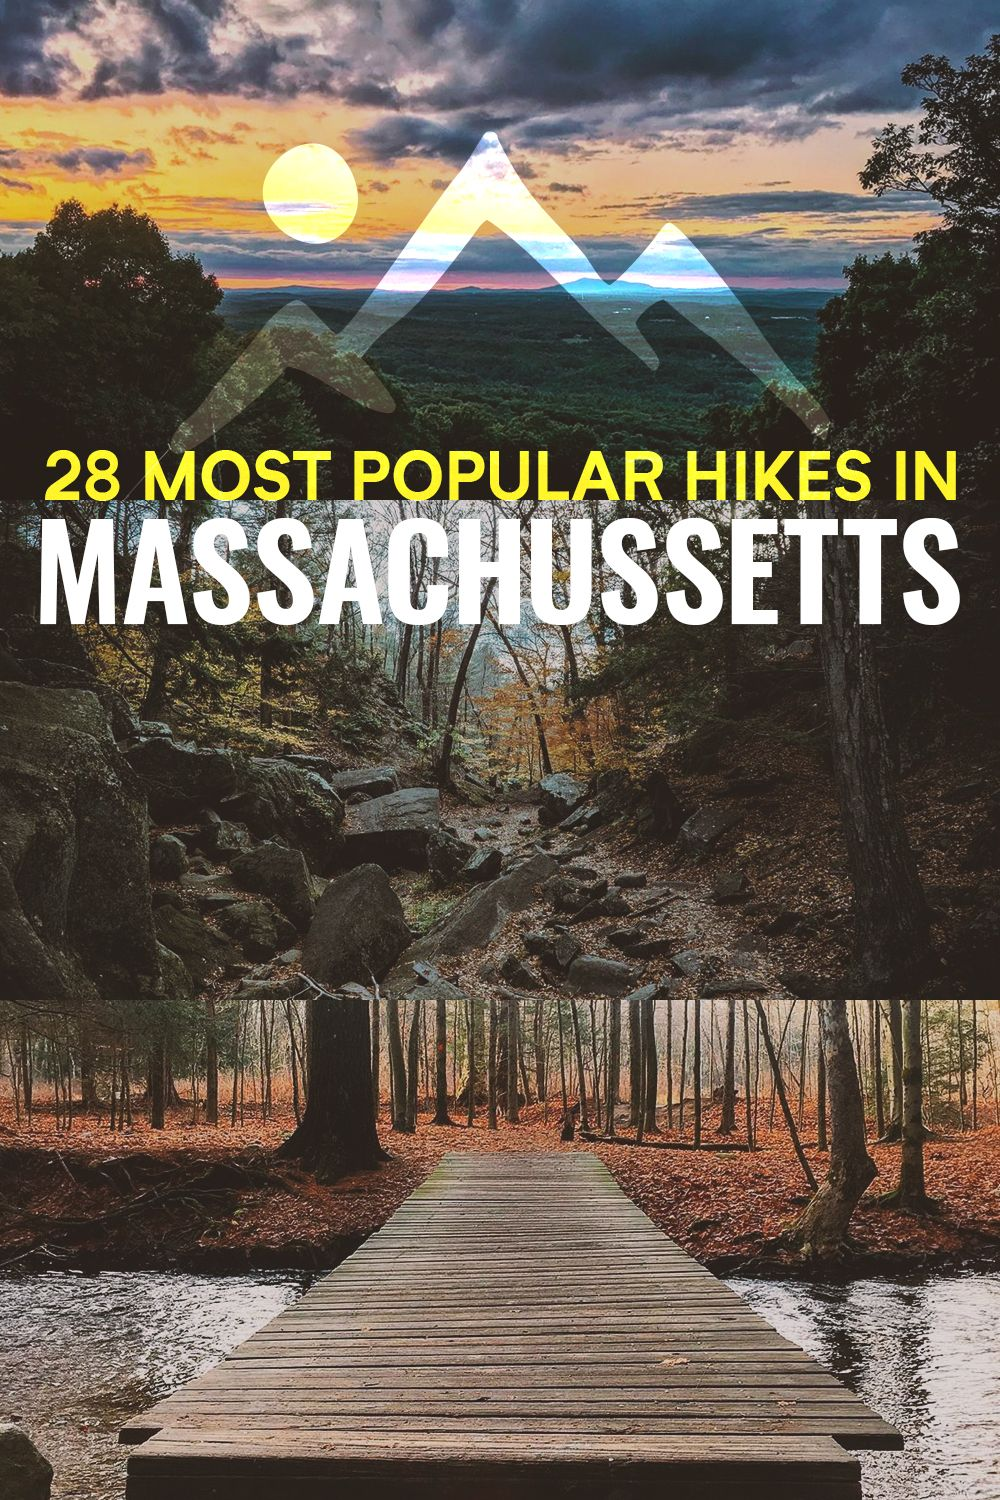 The 28 Most Popular Hikes in Massachusetts (According to